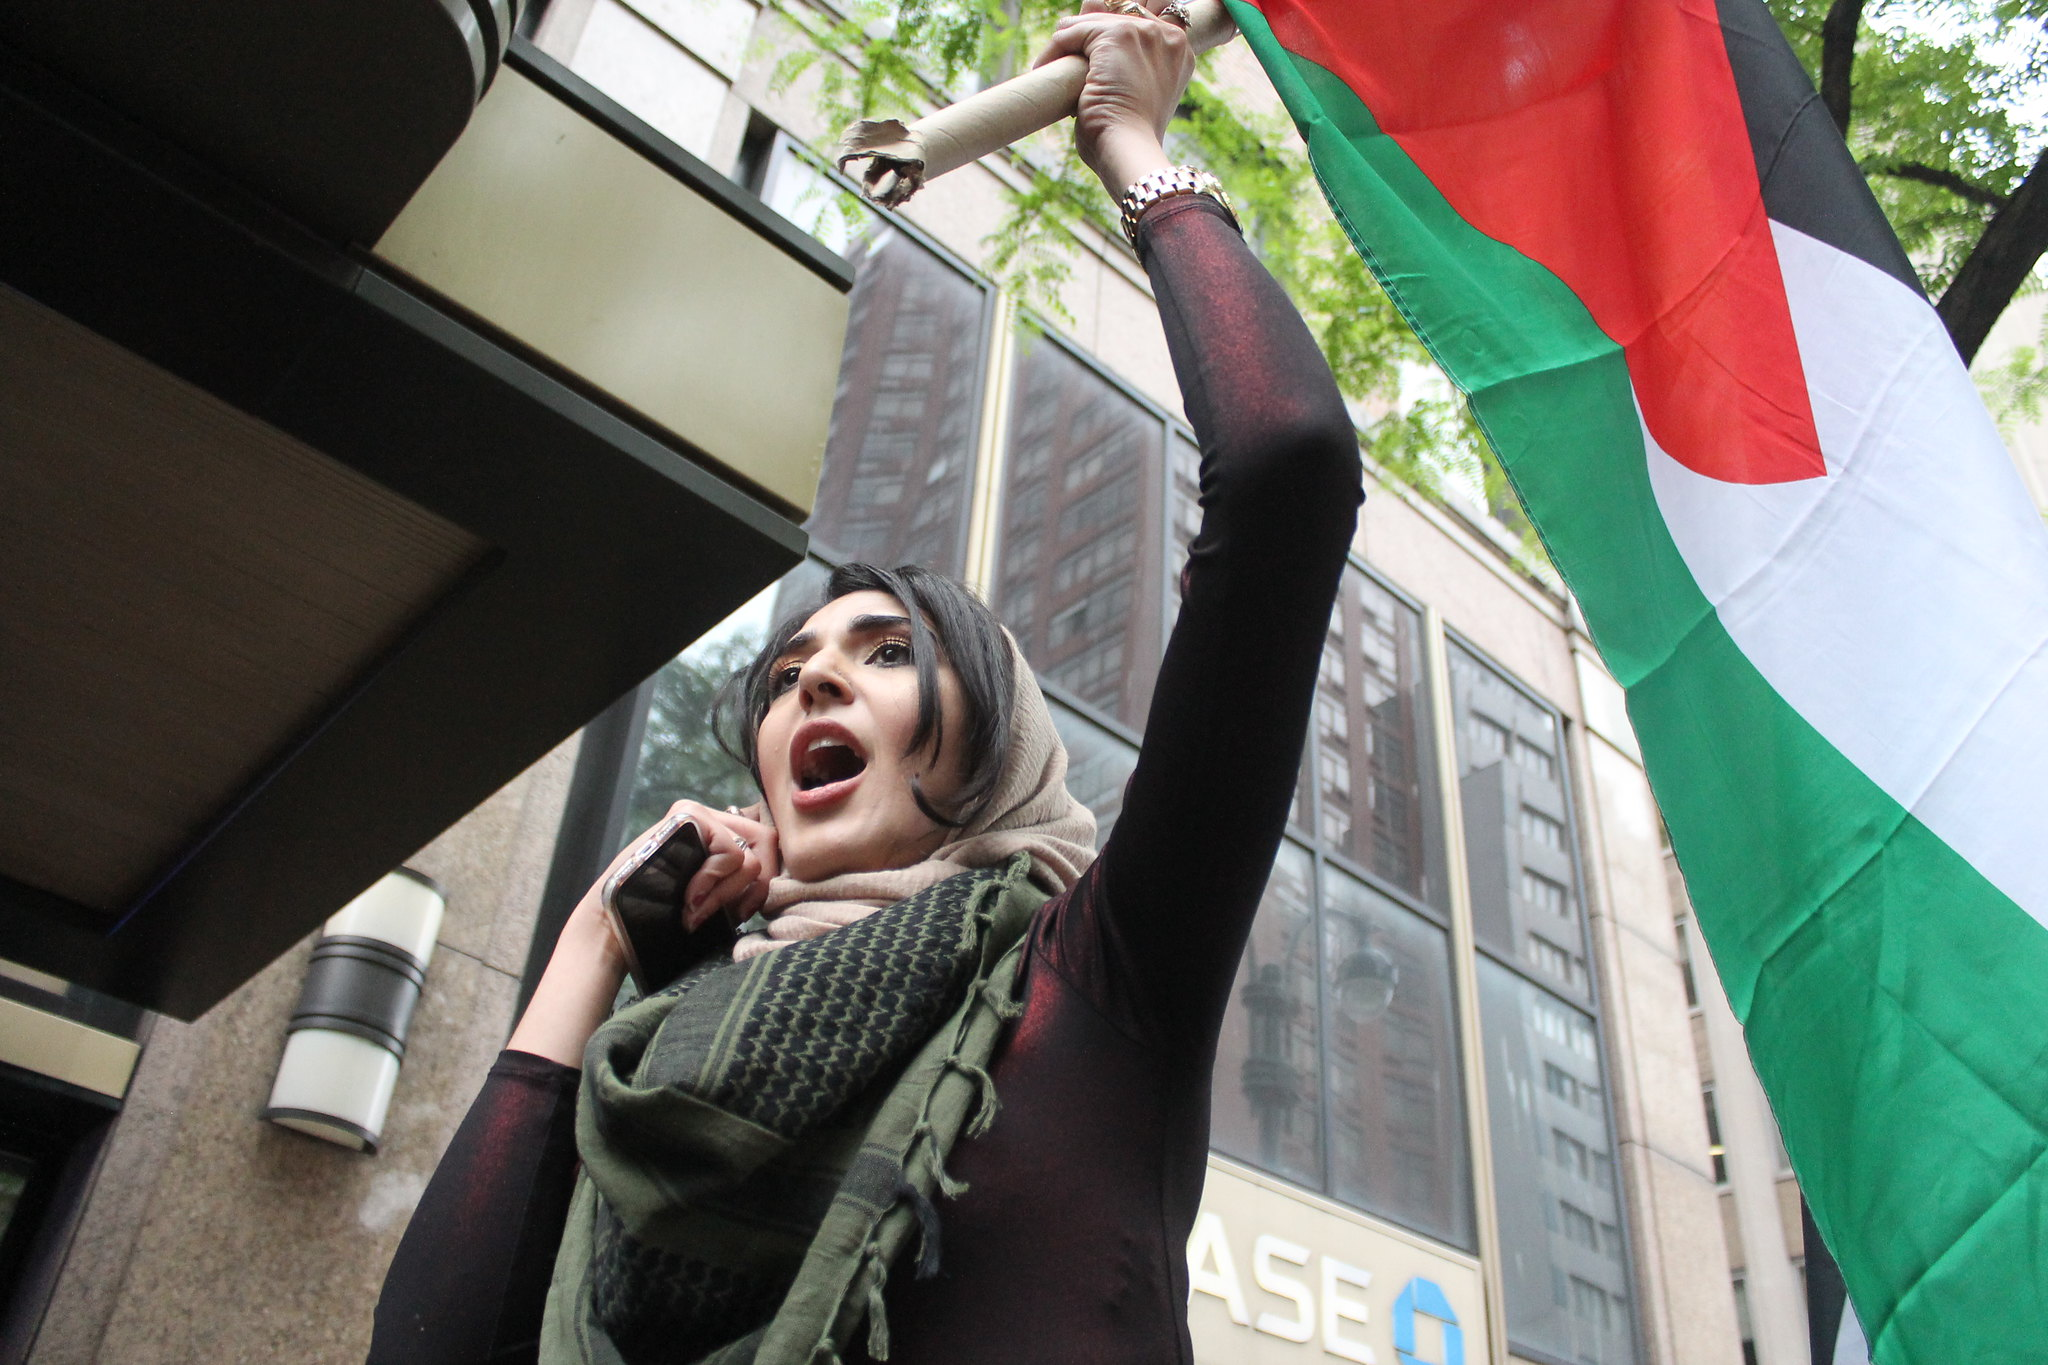 A protester takes part in a protest marking the 70th anniversary of the Nakba, New York, May 18, 2018. (Joe Catron/CC 2.0)